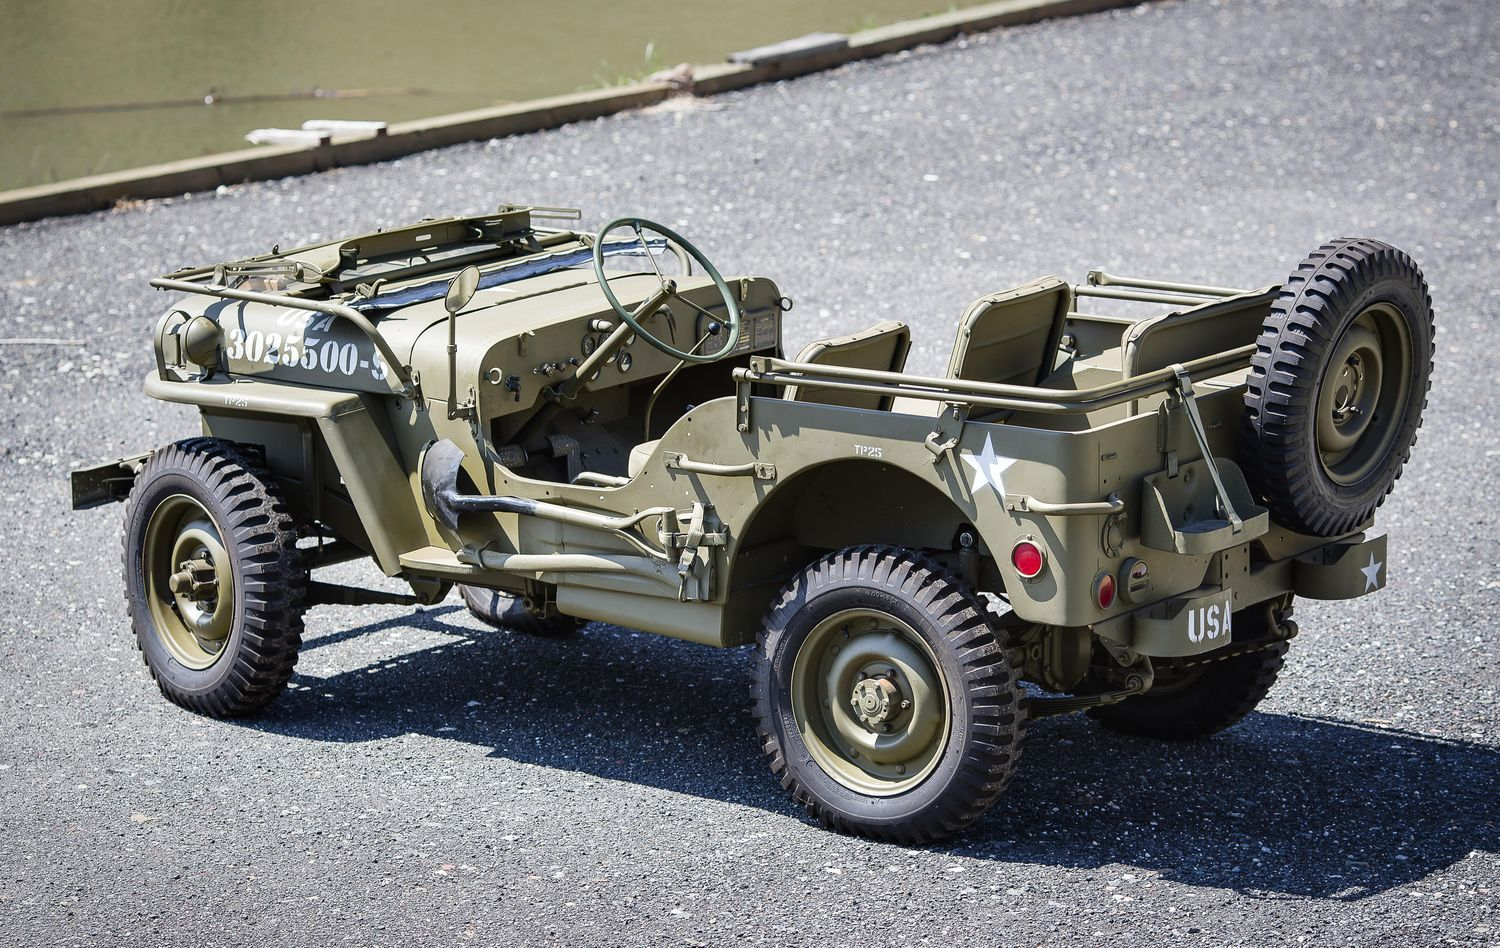 Jeep mb jeep : DykesC.jpg | WWII Jeeps | Pinterest | Willys mb, Jeeps and Jeep willys